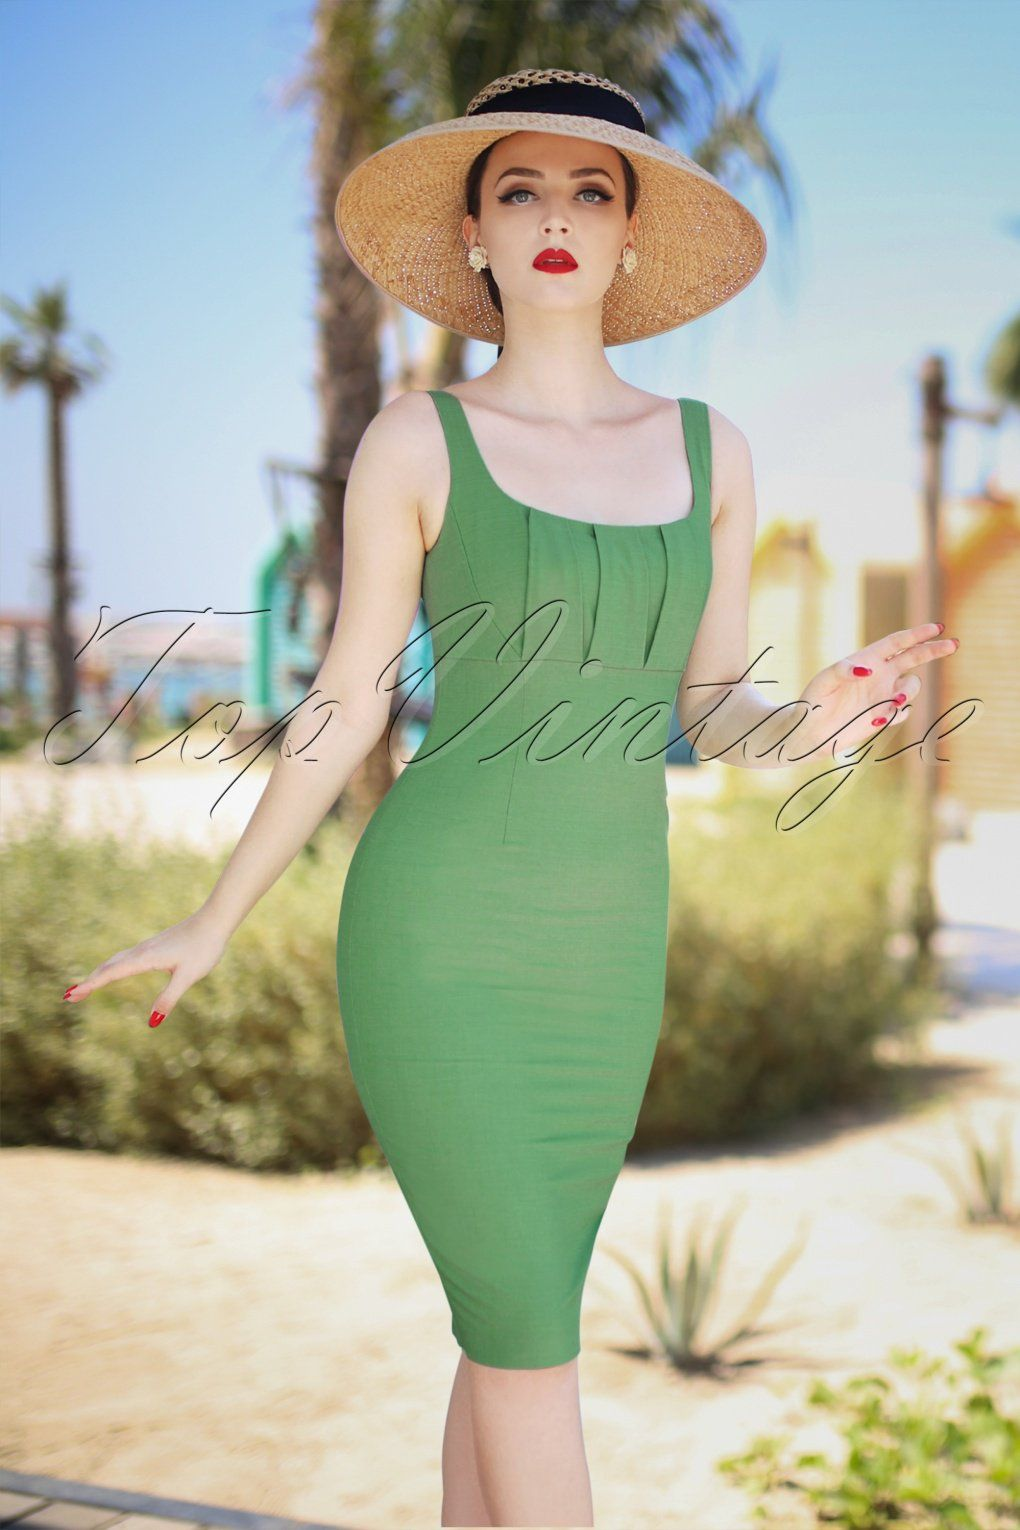 48f7bdde2bb021 It will be a summer full of allure in the new Vintage Diva collection from  TopVintage owner Angelique! You re a real  La Dolce Vita Diva  and that  really ...